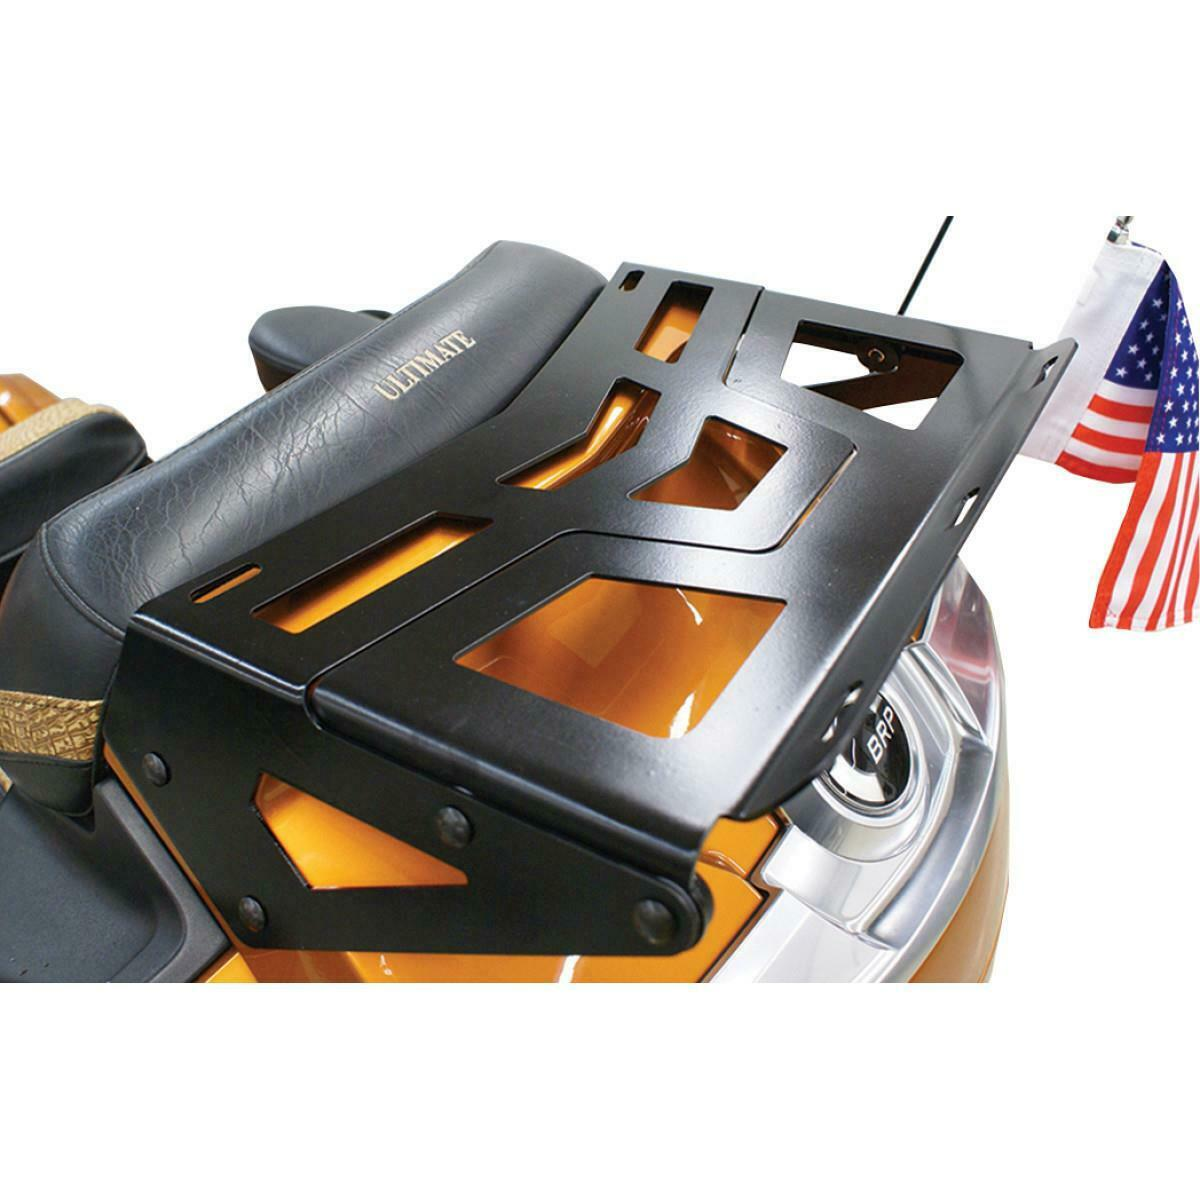 Solo Luggage Rack 7 Gloss Black for Fat Boys 07-UP and Deluxe 05-UP models